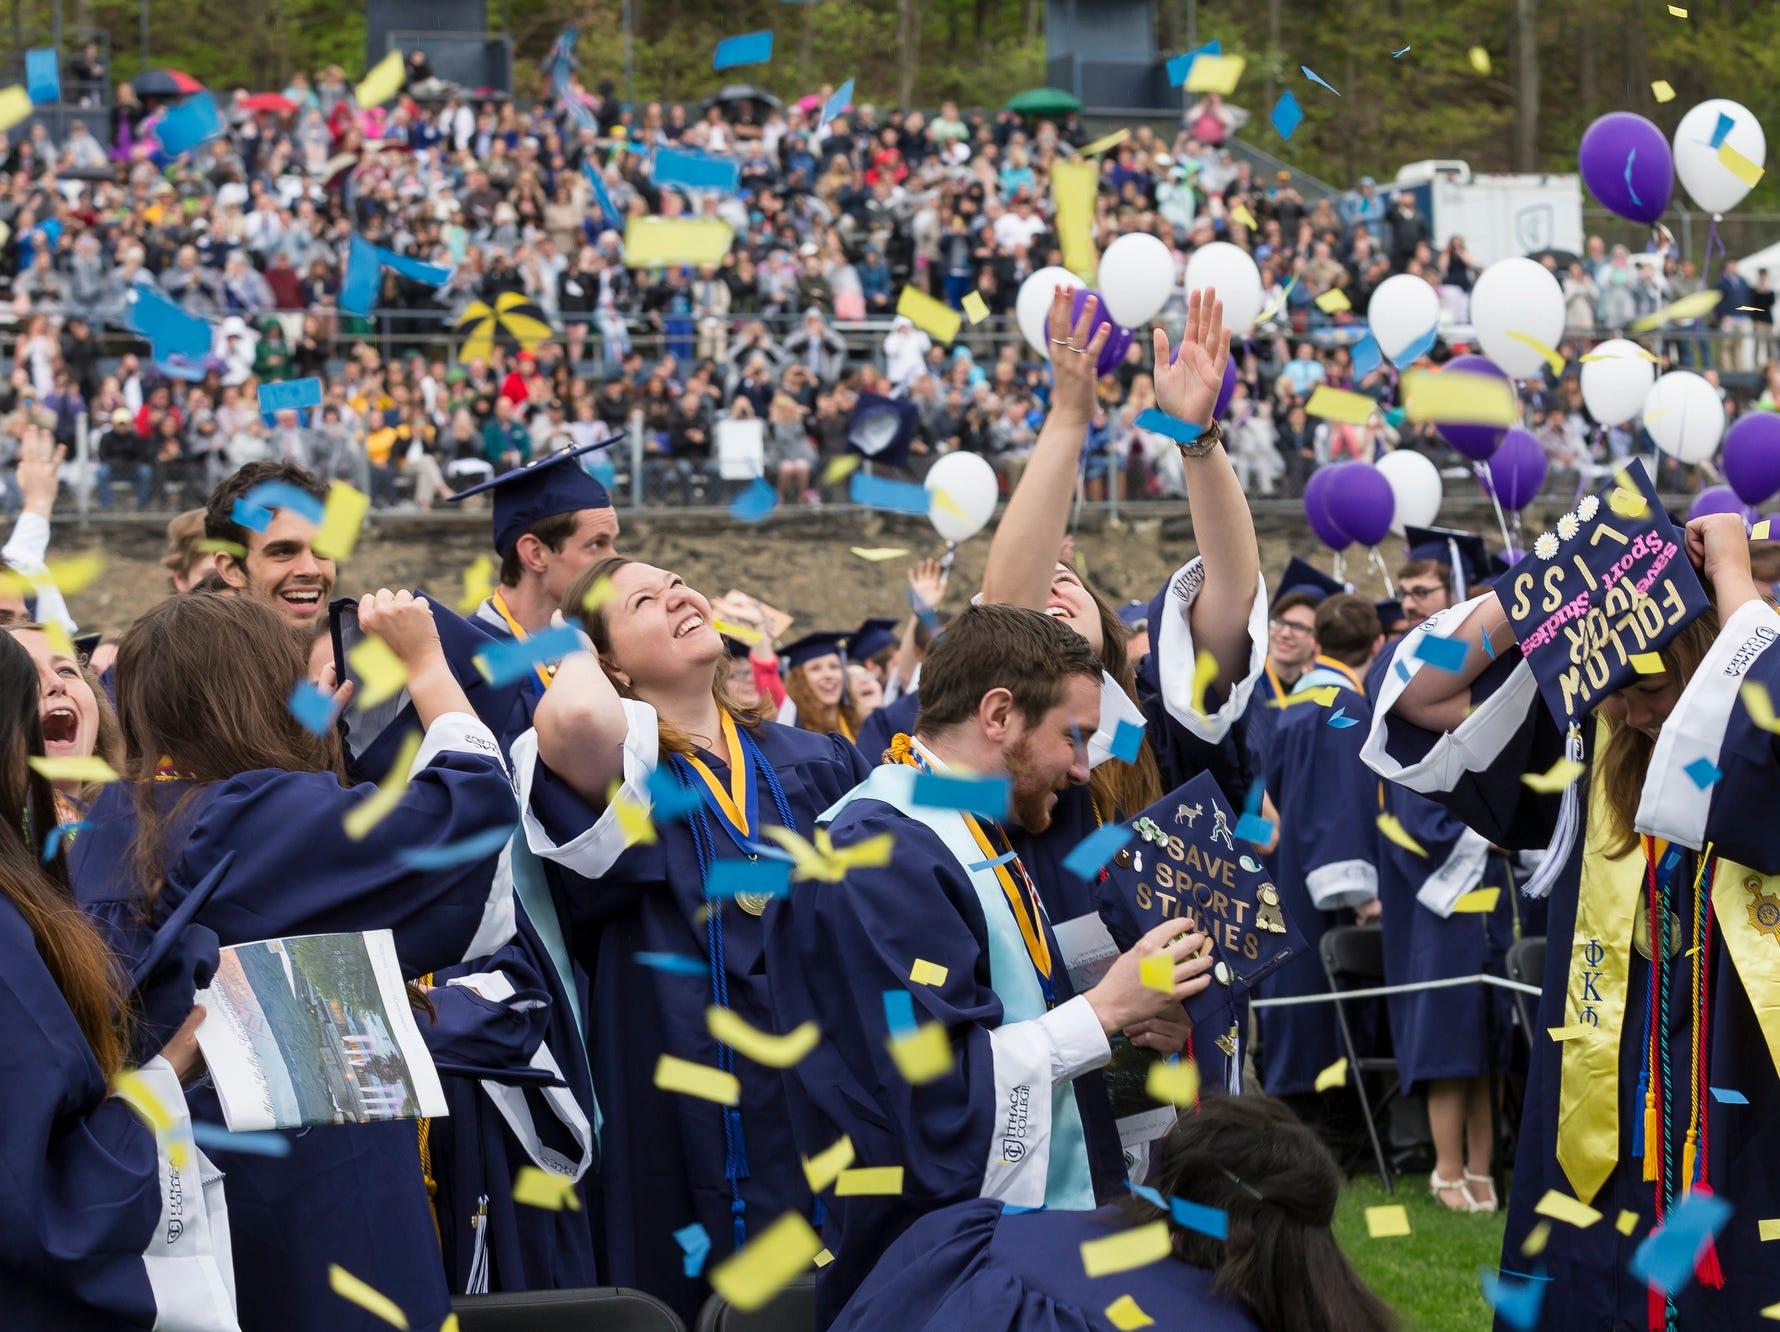 2016: Ithaca College graduates toss up their caps to celebrate.